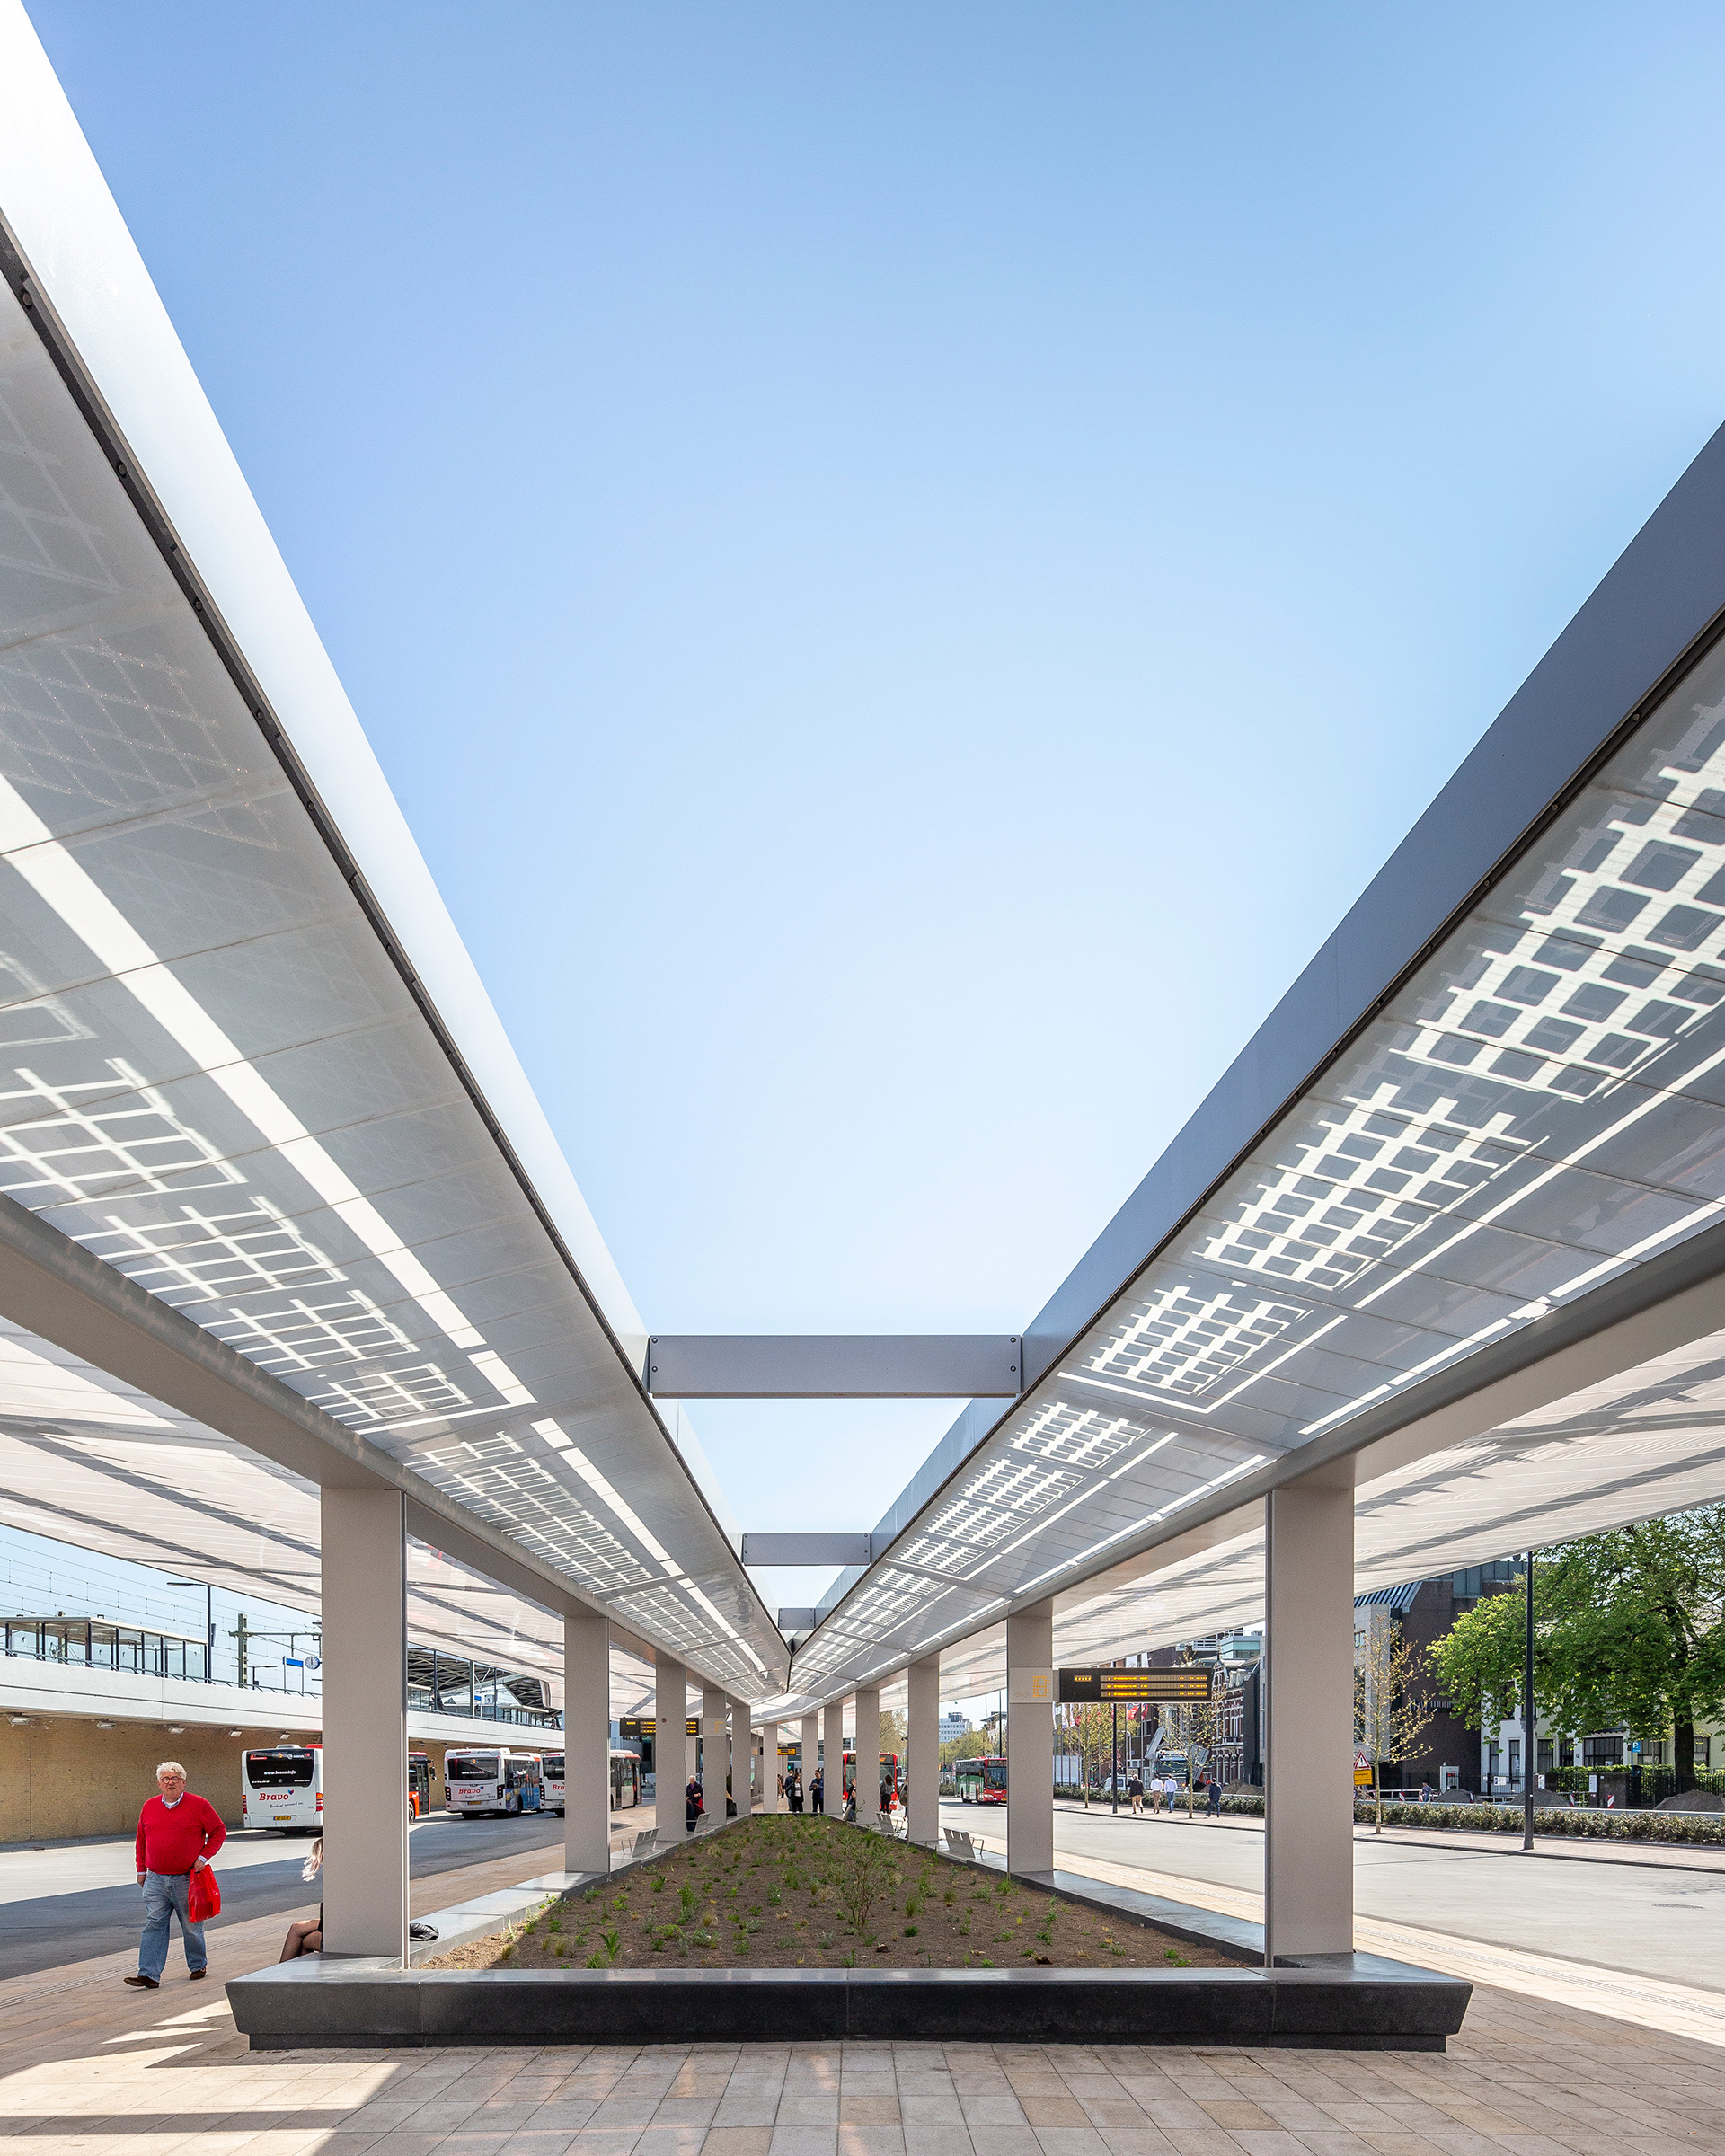 Movement sensors have been integrated into the steel edge of the awning of the Tilburg bus station every 14 metres, which respond to the presence of buses and people and thereby optimising energy usage | Tilburg Bus Station| Cepezed| STIR